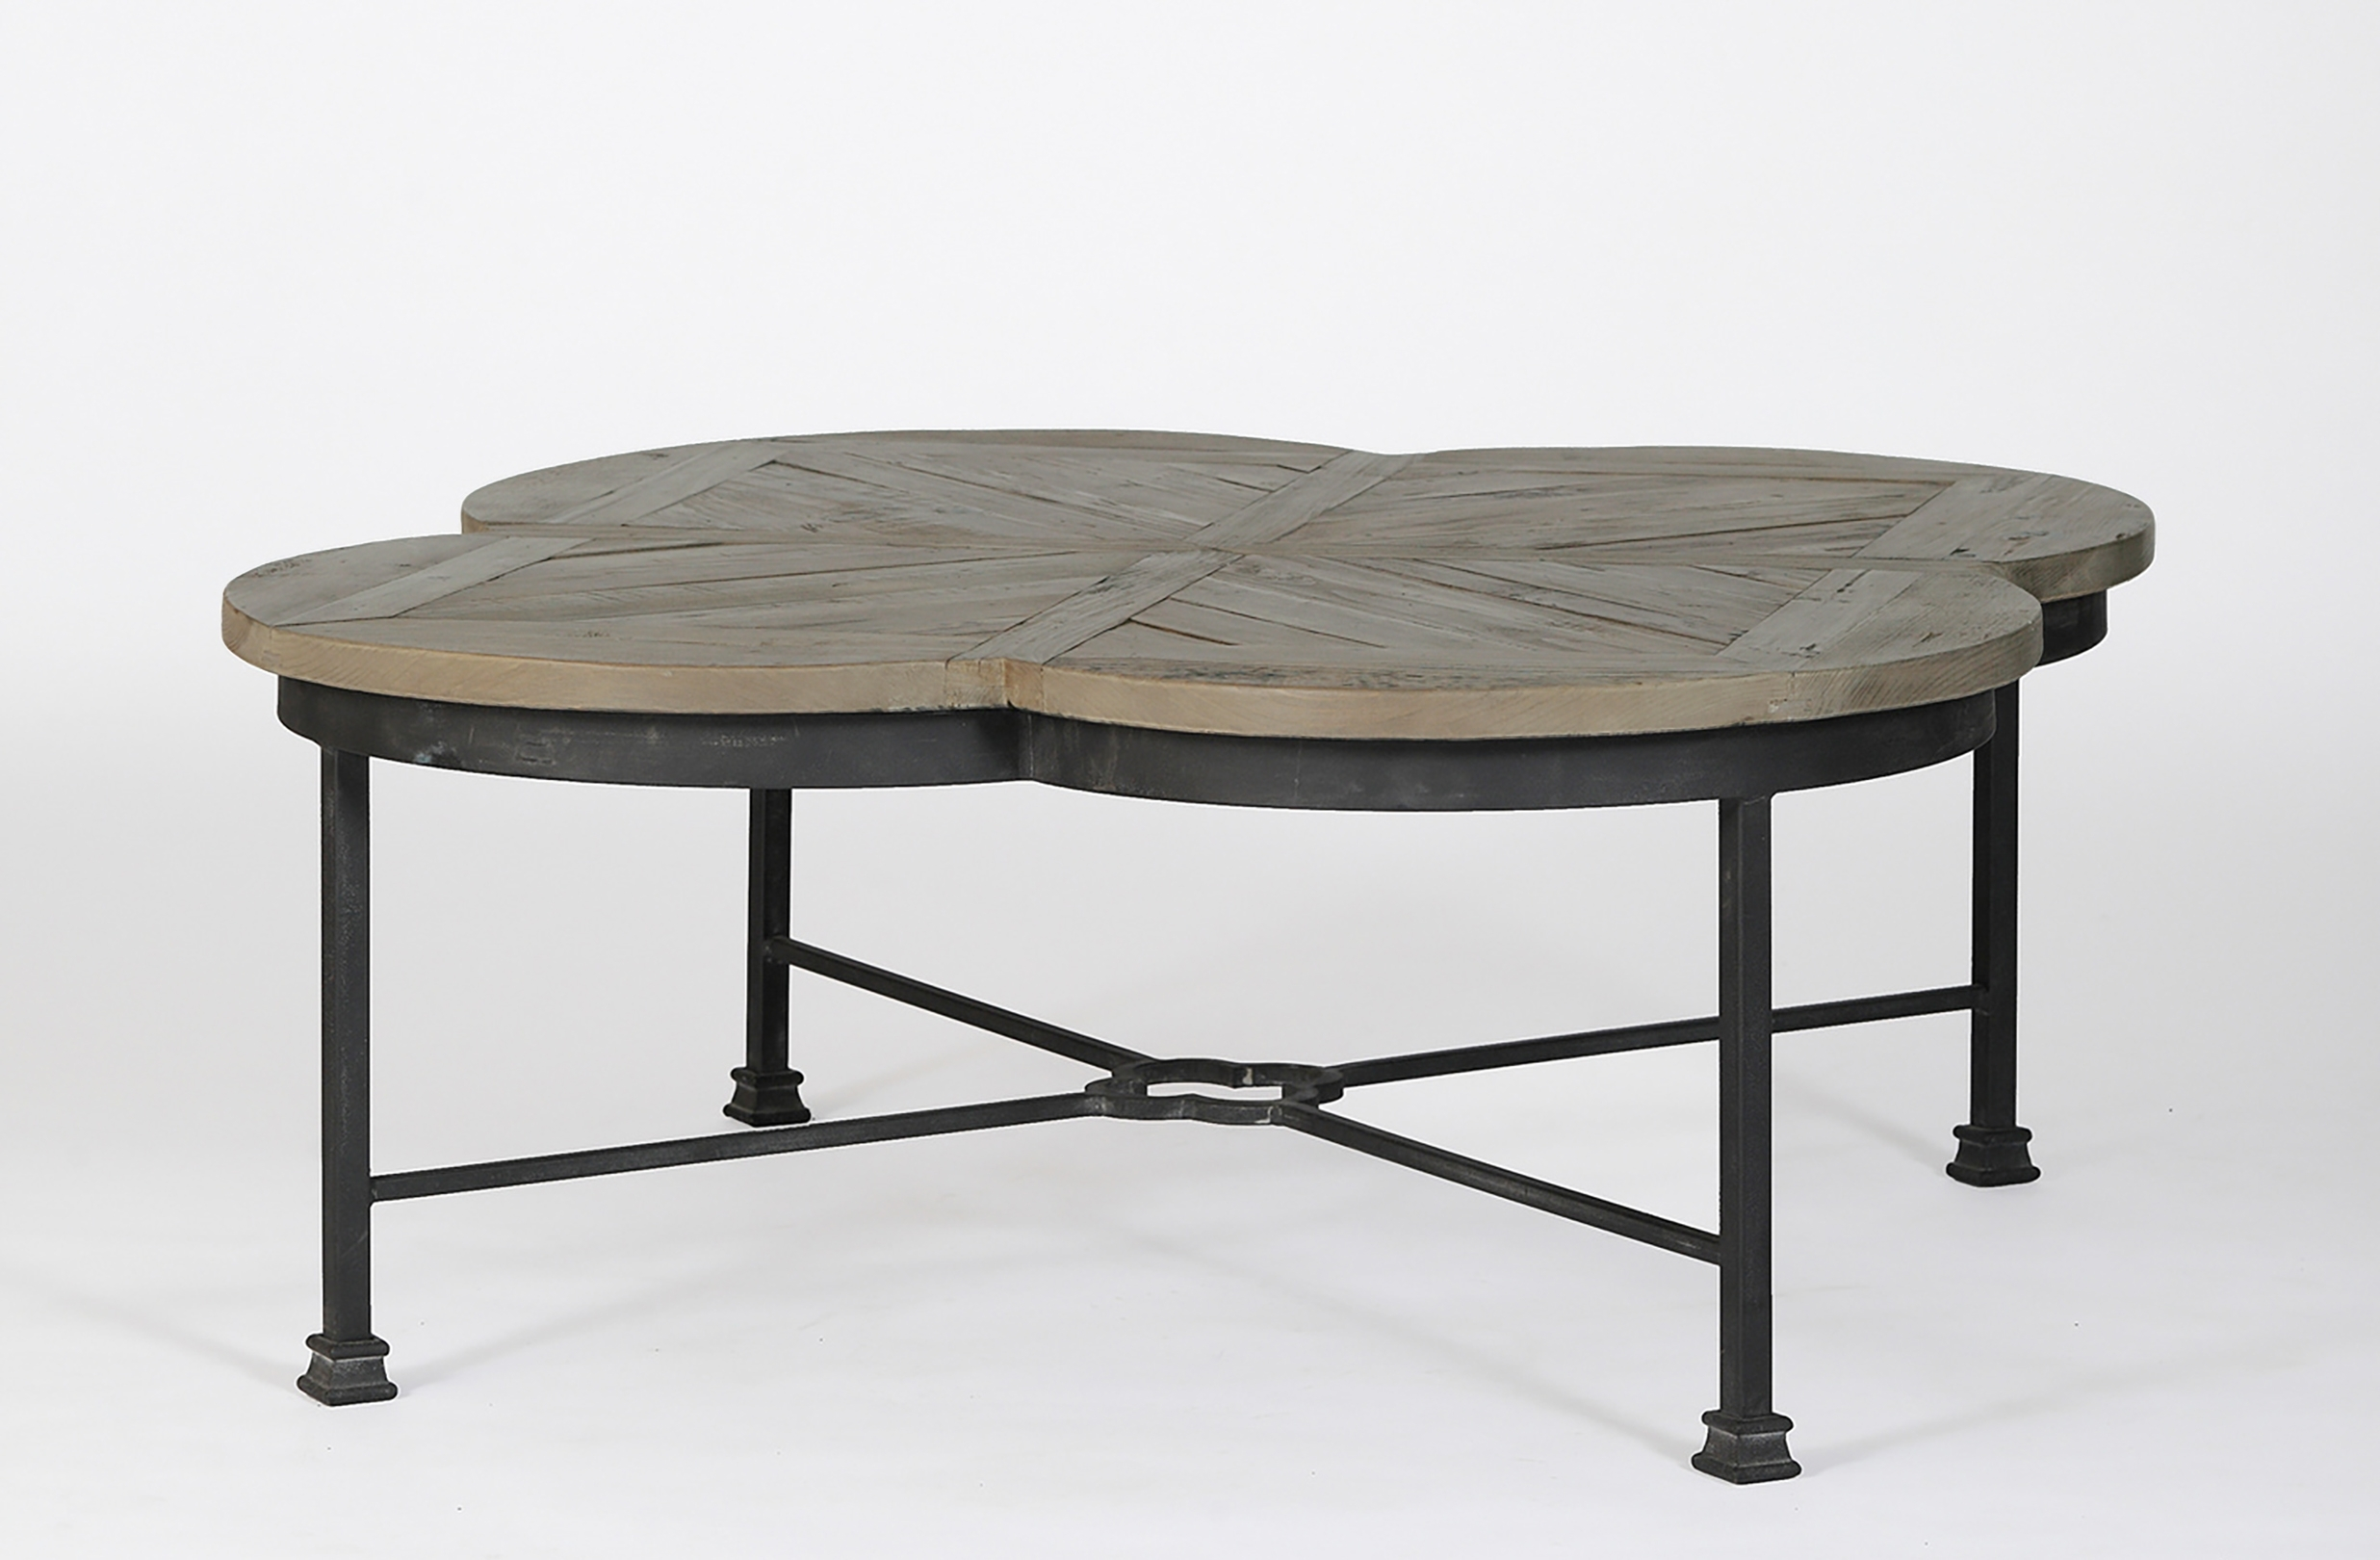 Edwin Quatrefoil Coffee Table – Gabby For Favorite Reclaimed Pine & Iron Coffee Tables (View 3 of 20)